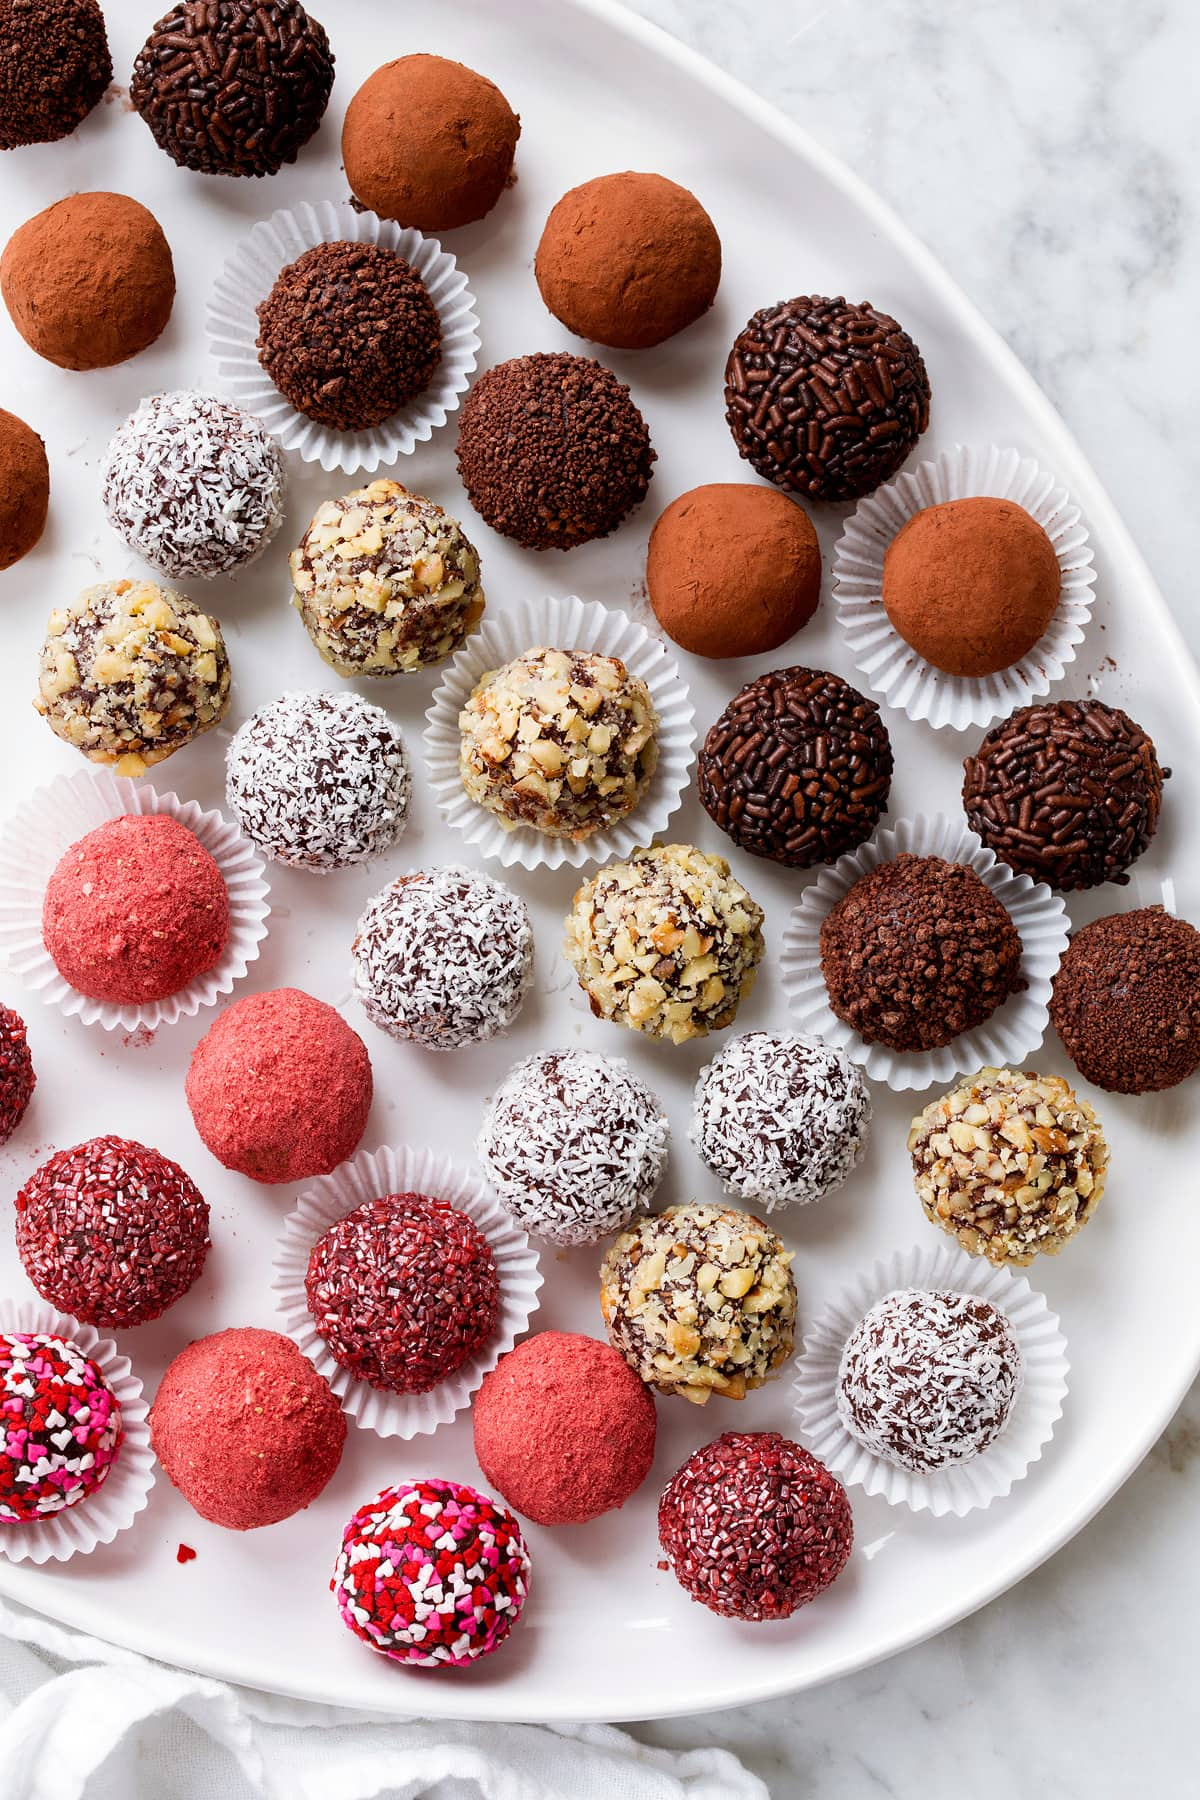 Rows of chocolate truffles coated in different toppings shown on a white oval serving platter.